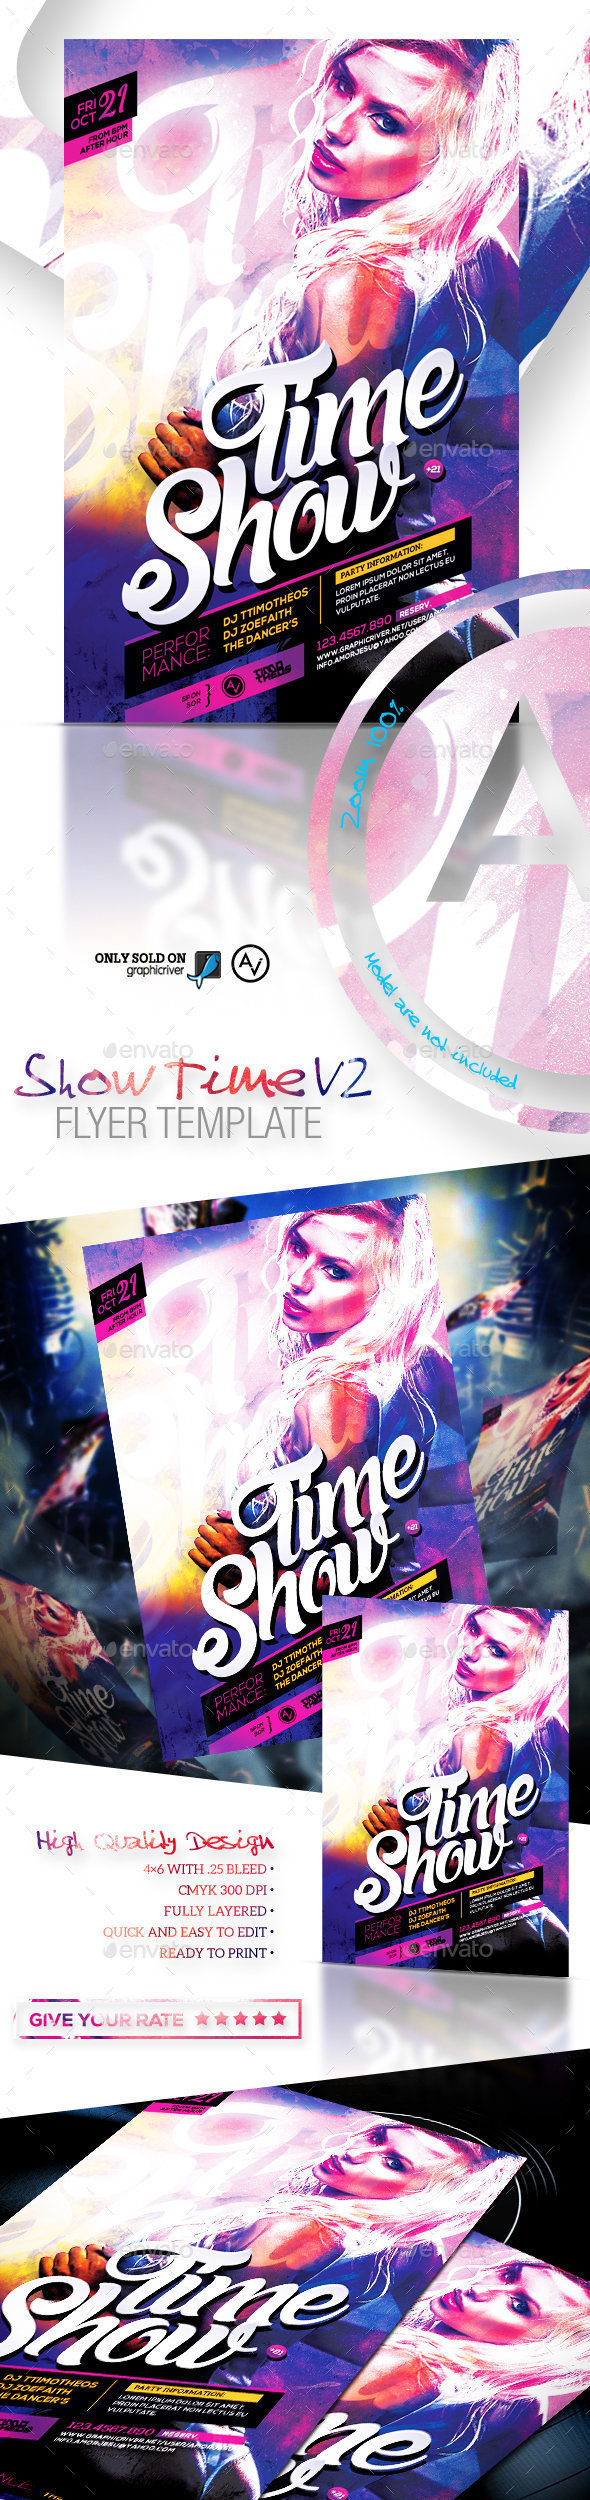 Show Time Flyer Template V2 - Clubs & Parties Events